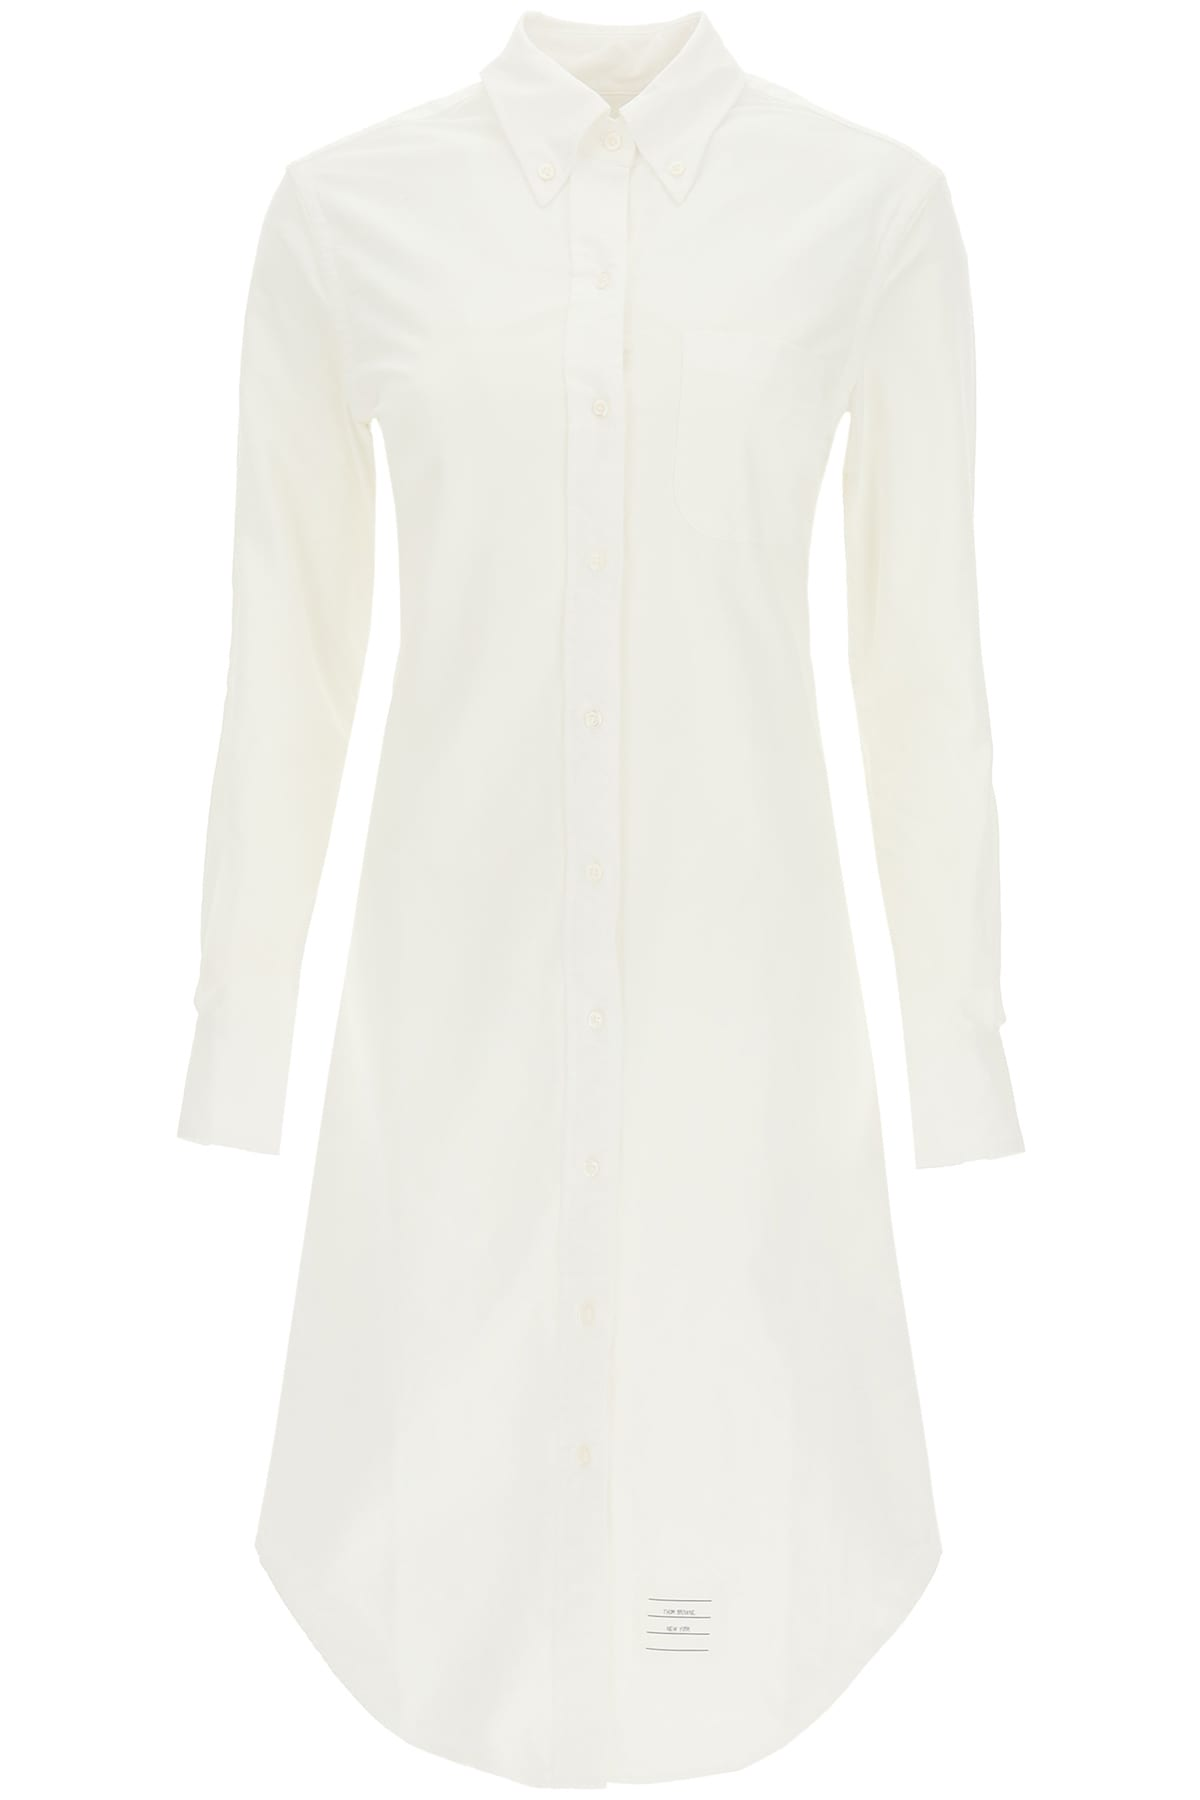 Thom Browne SHIRT DRESS IN OXFORD COTTON